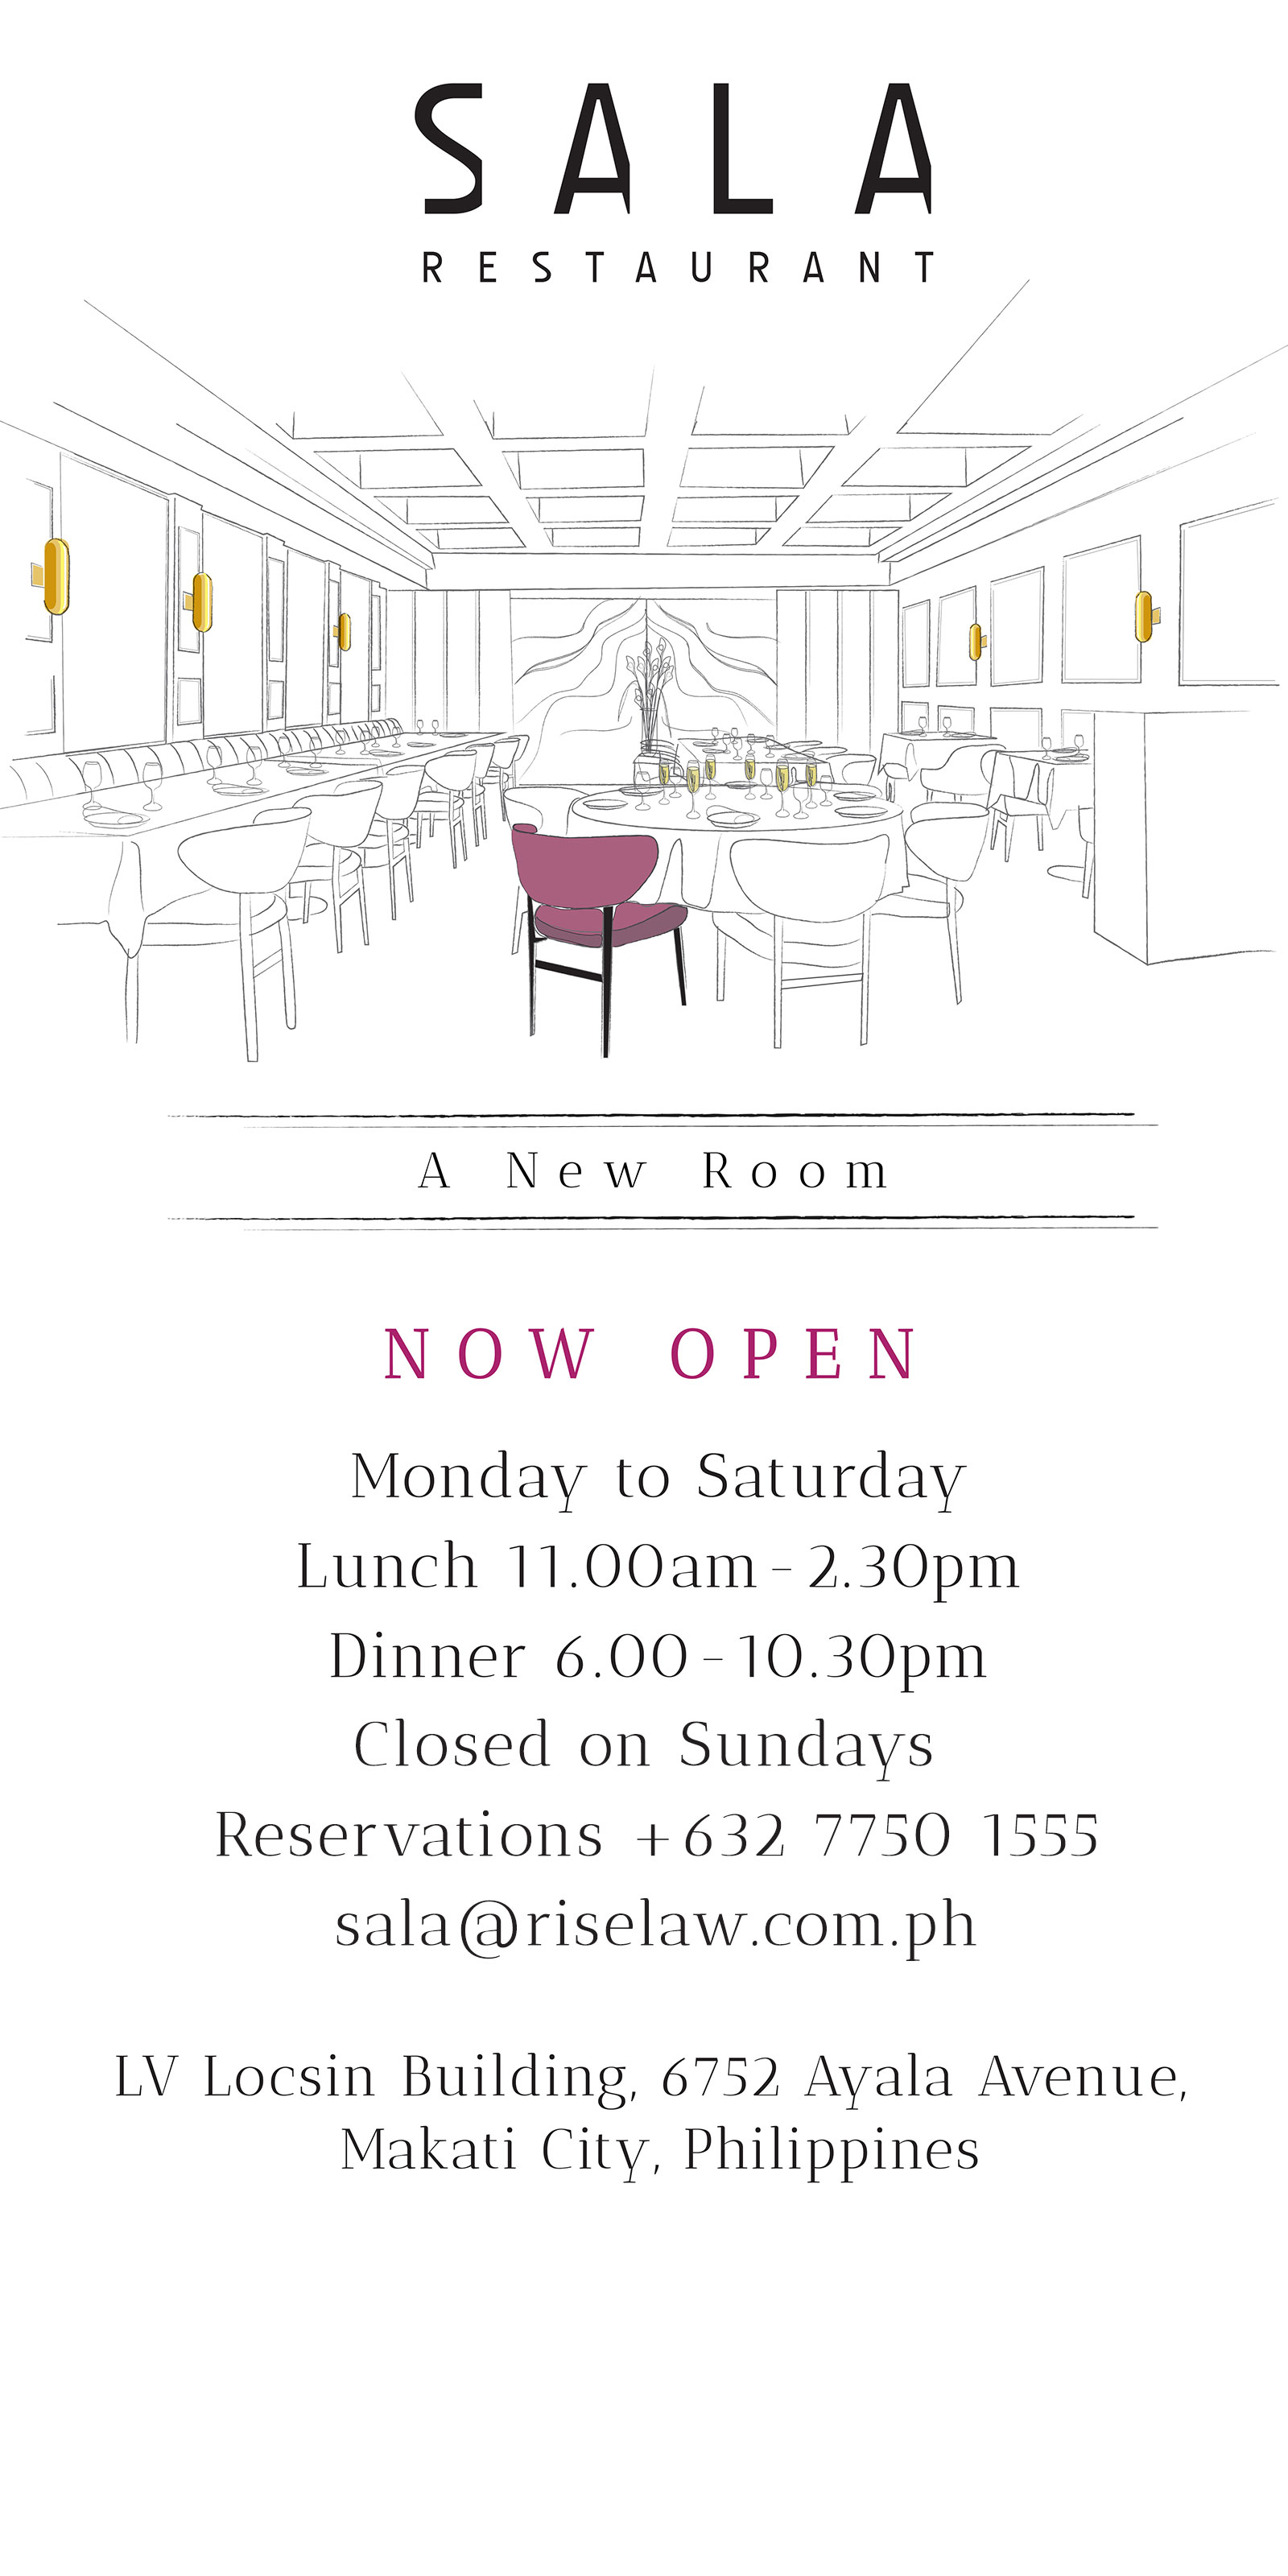 A New Room Opening soon SALA Podium Level, LV Locsin Building 6752 Ayala Avenue corner Makati Avenue Makati City, Philippines Email info@salarestaurant.com